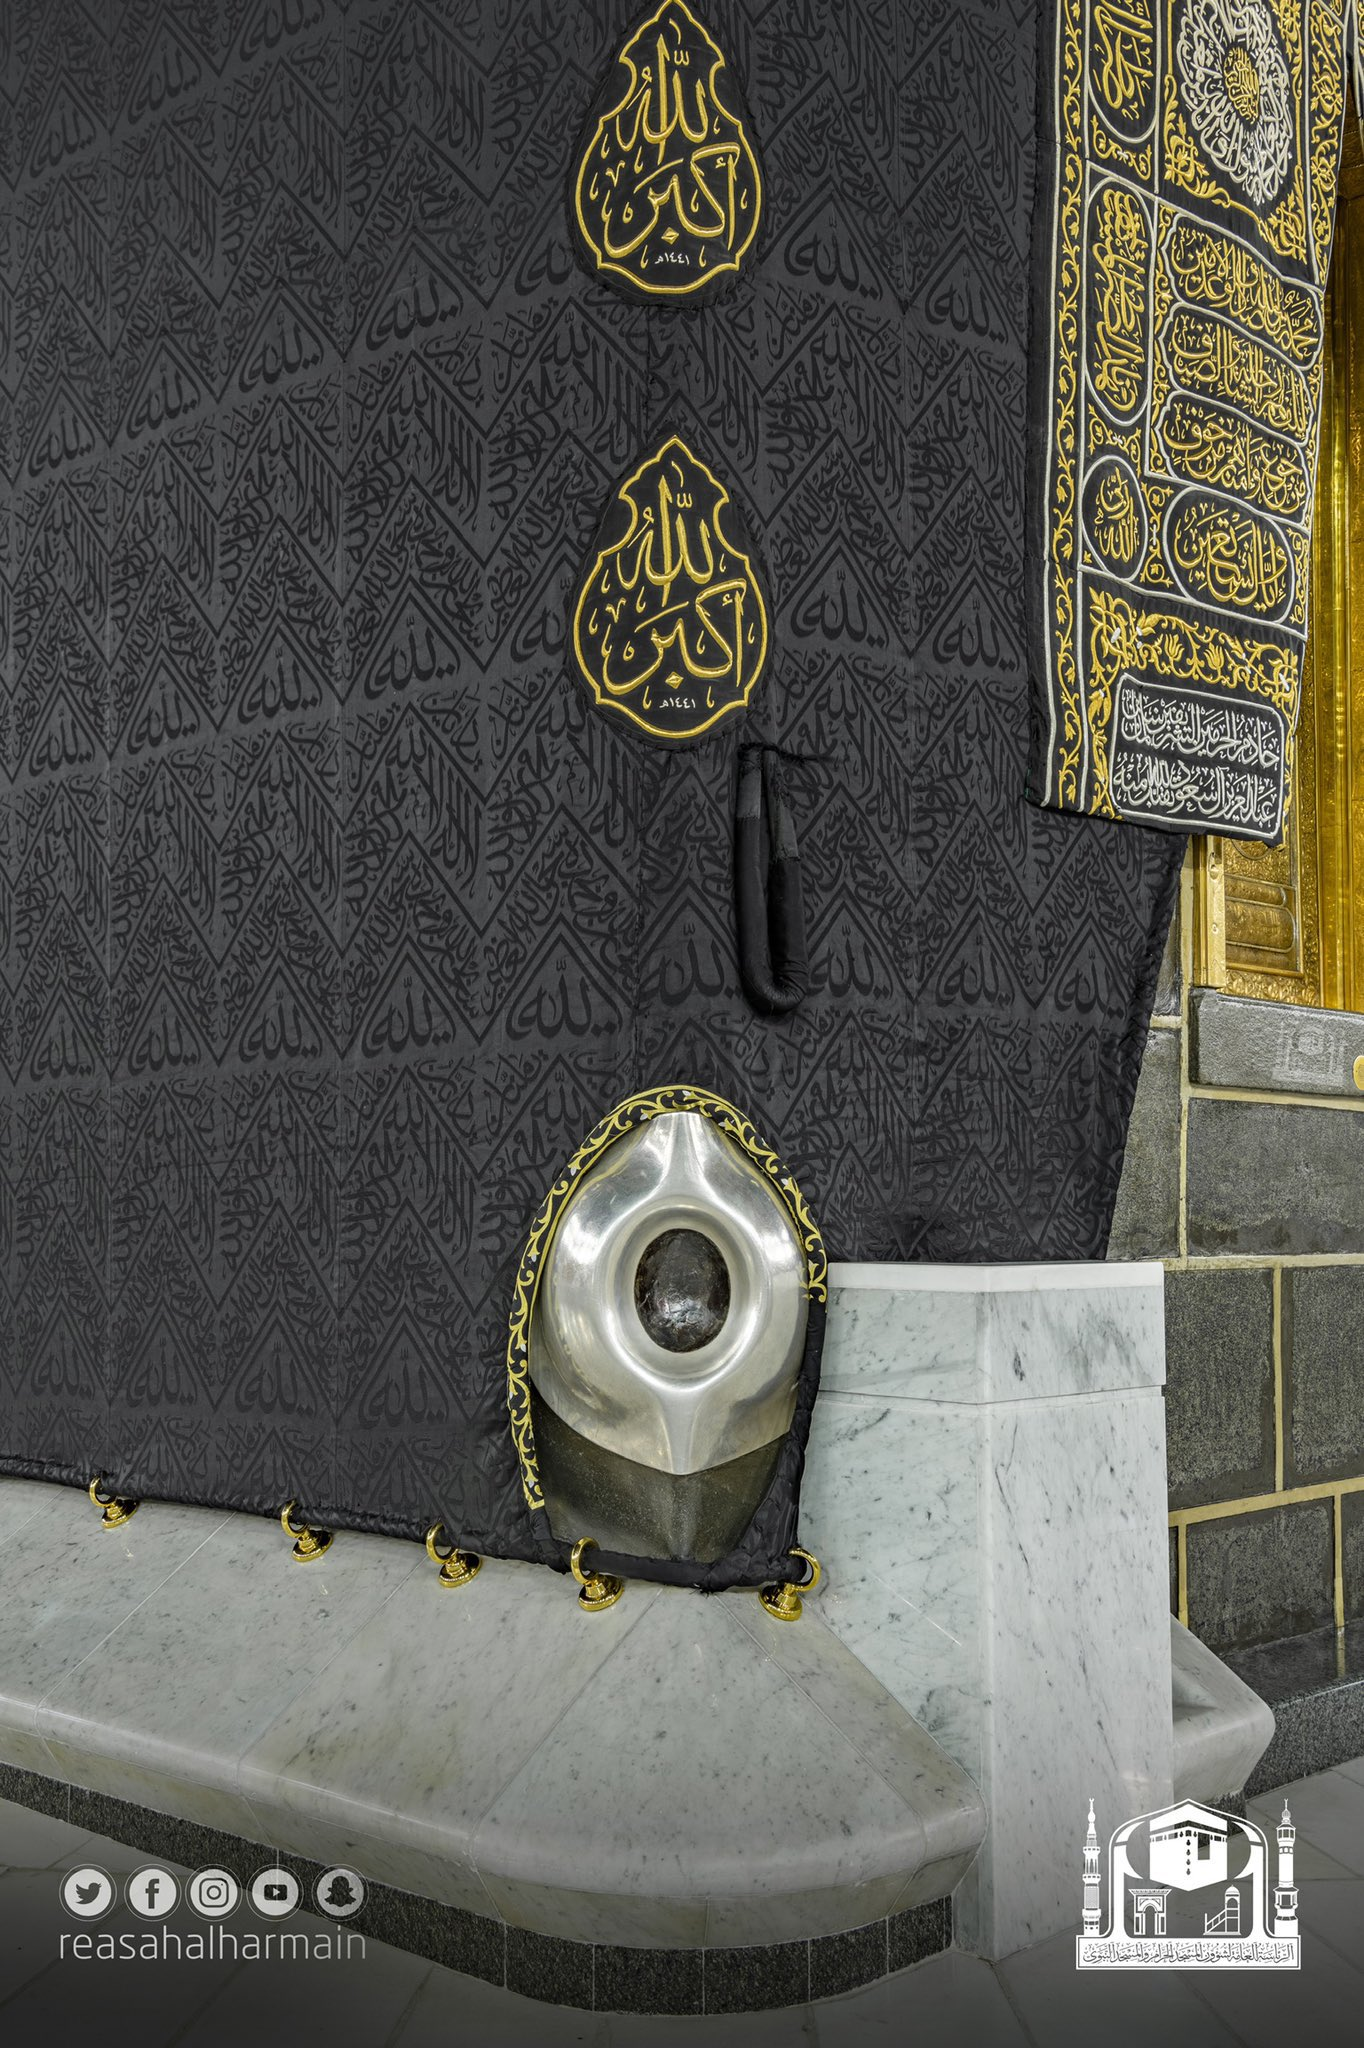 New images of the black stone with HD photography technology